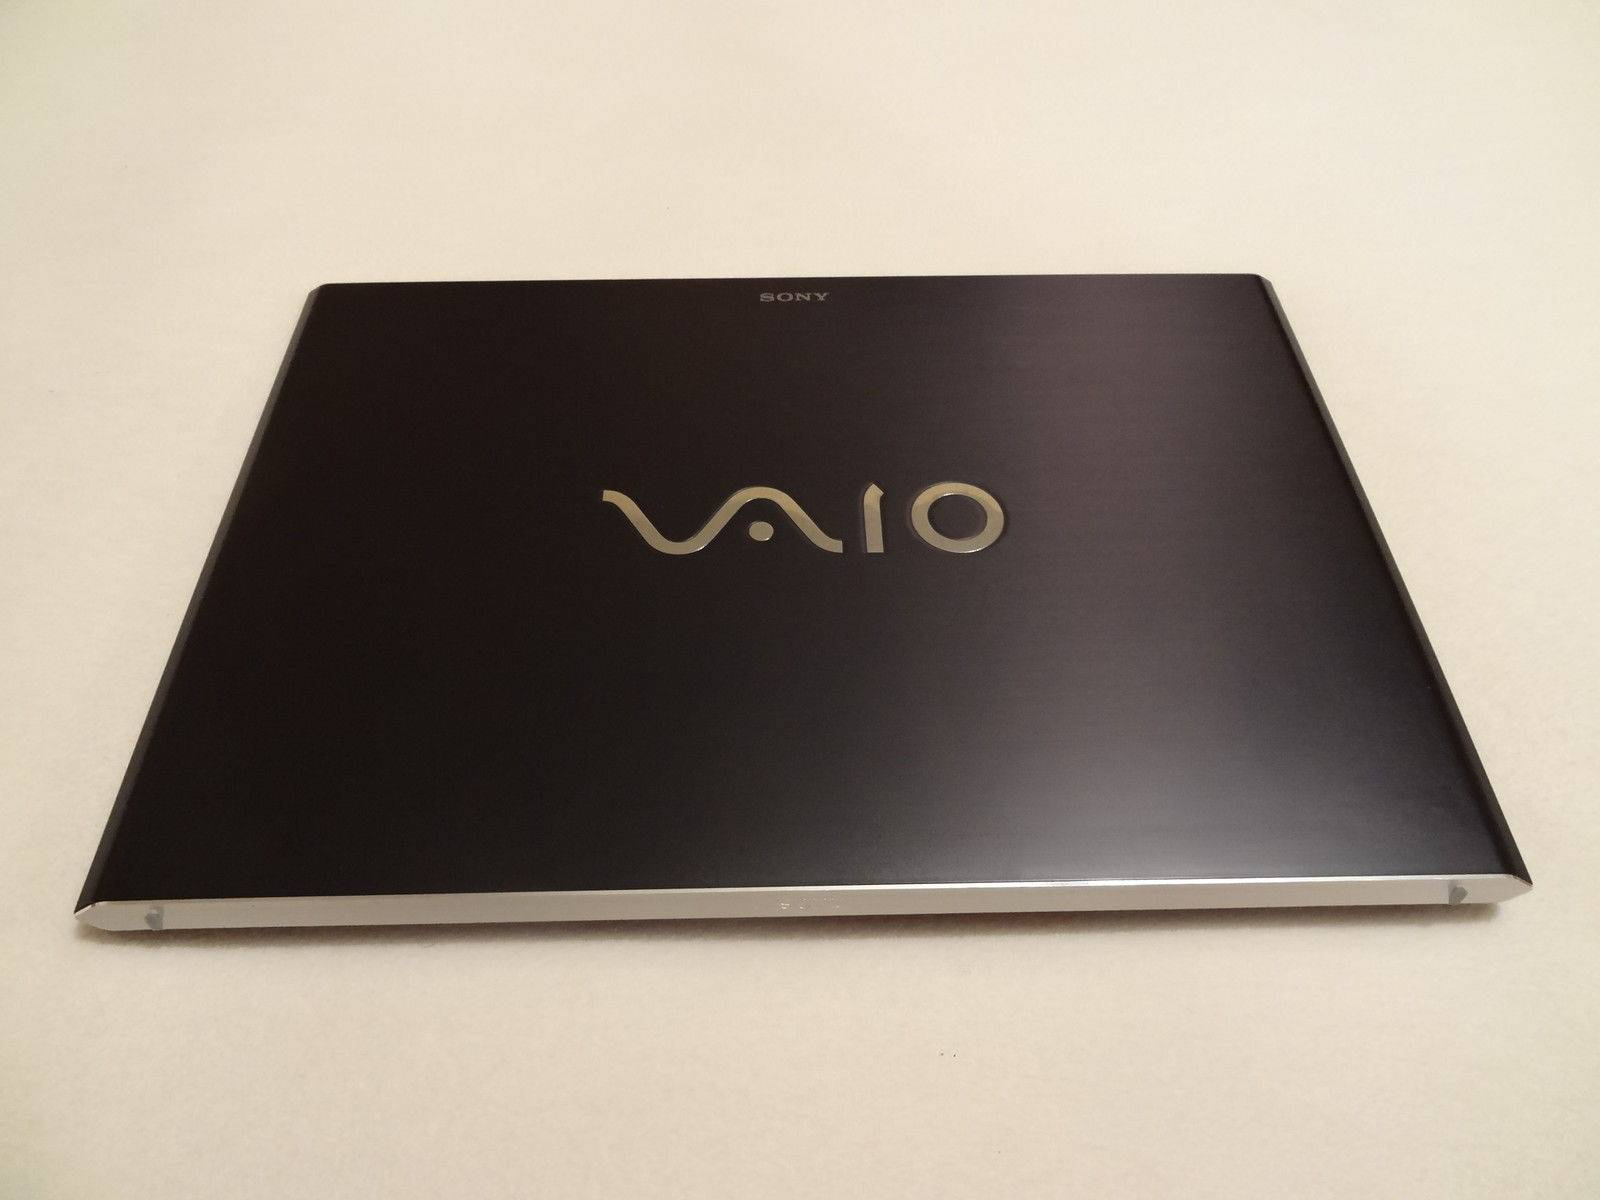 Sony VAIO Pro 13 Touchscreen Ultrabook (Core i5, 4GB RAM, 128GB SSD, 1.6 GHz)